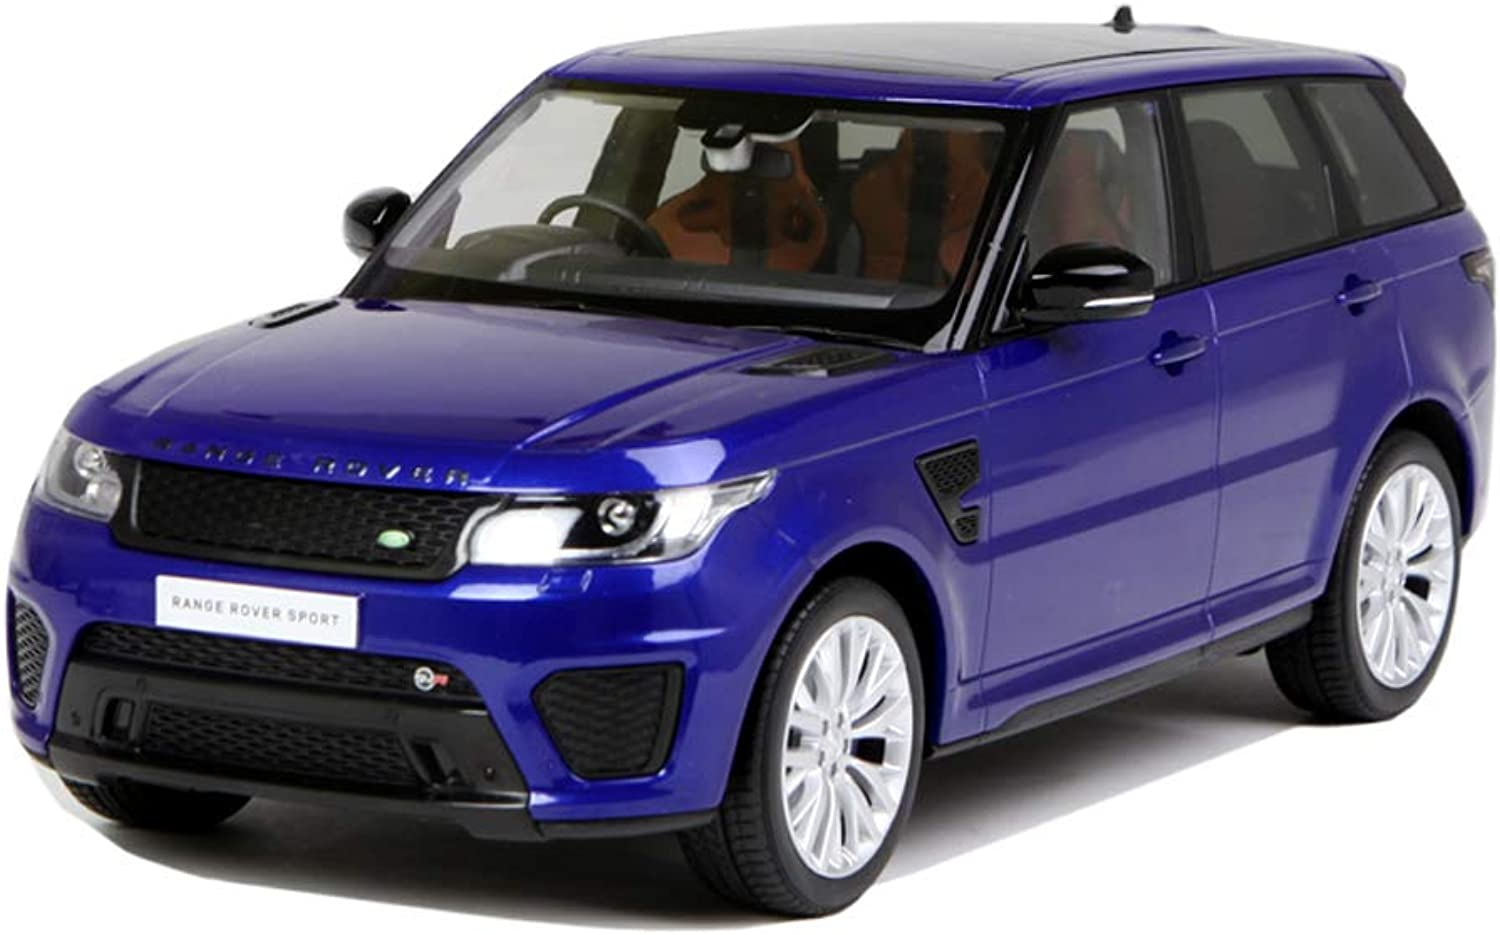 JIANPING Model Car Land Rover Range Rover Off-road Vehicle 1 18 Simulation Die-casting Alloy Toy Car Model Static Car Decoration Model car (color   bluee)